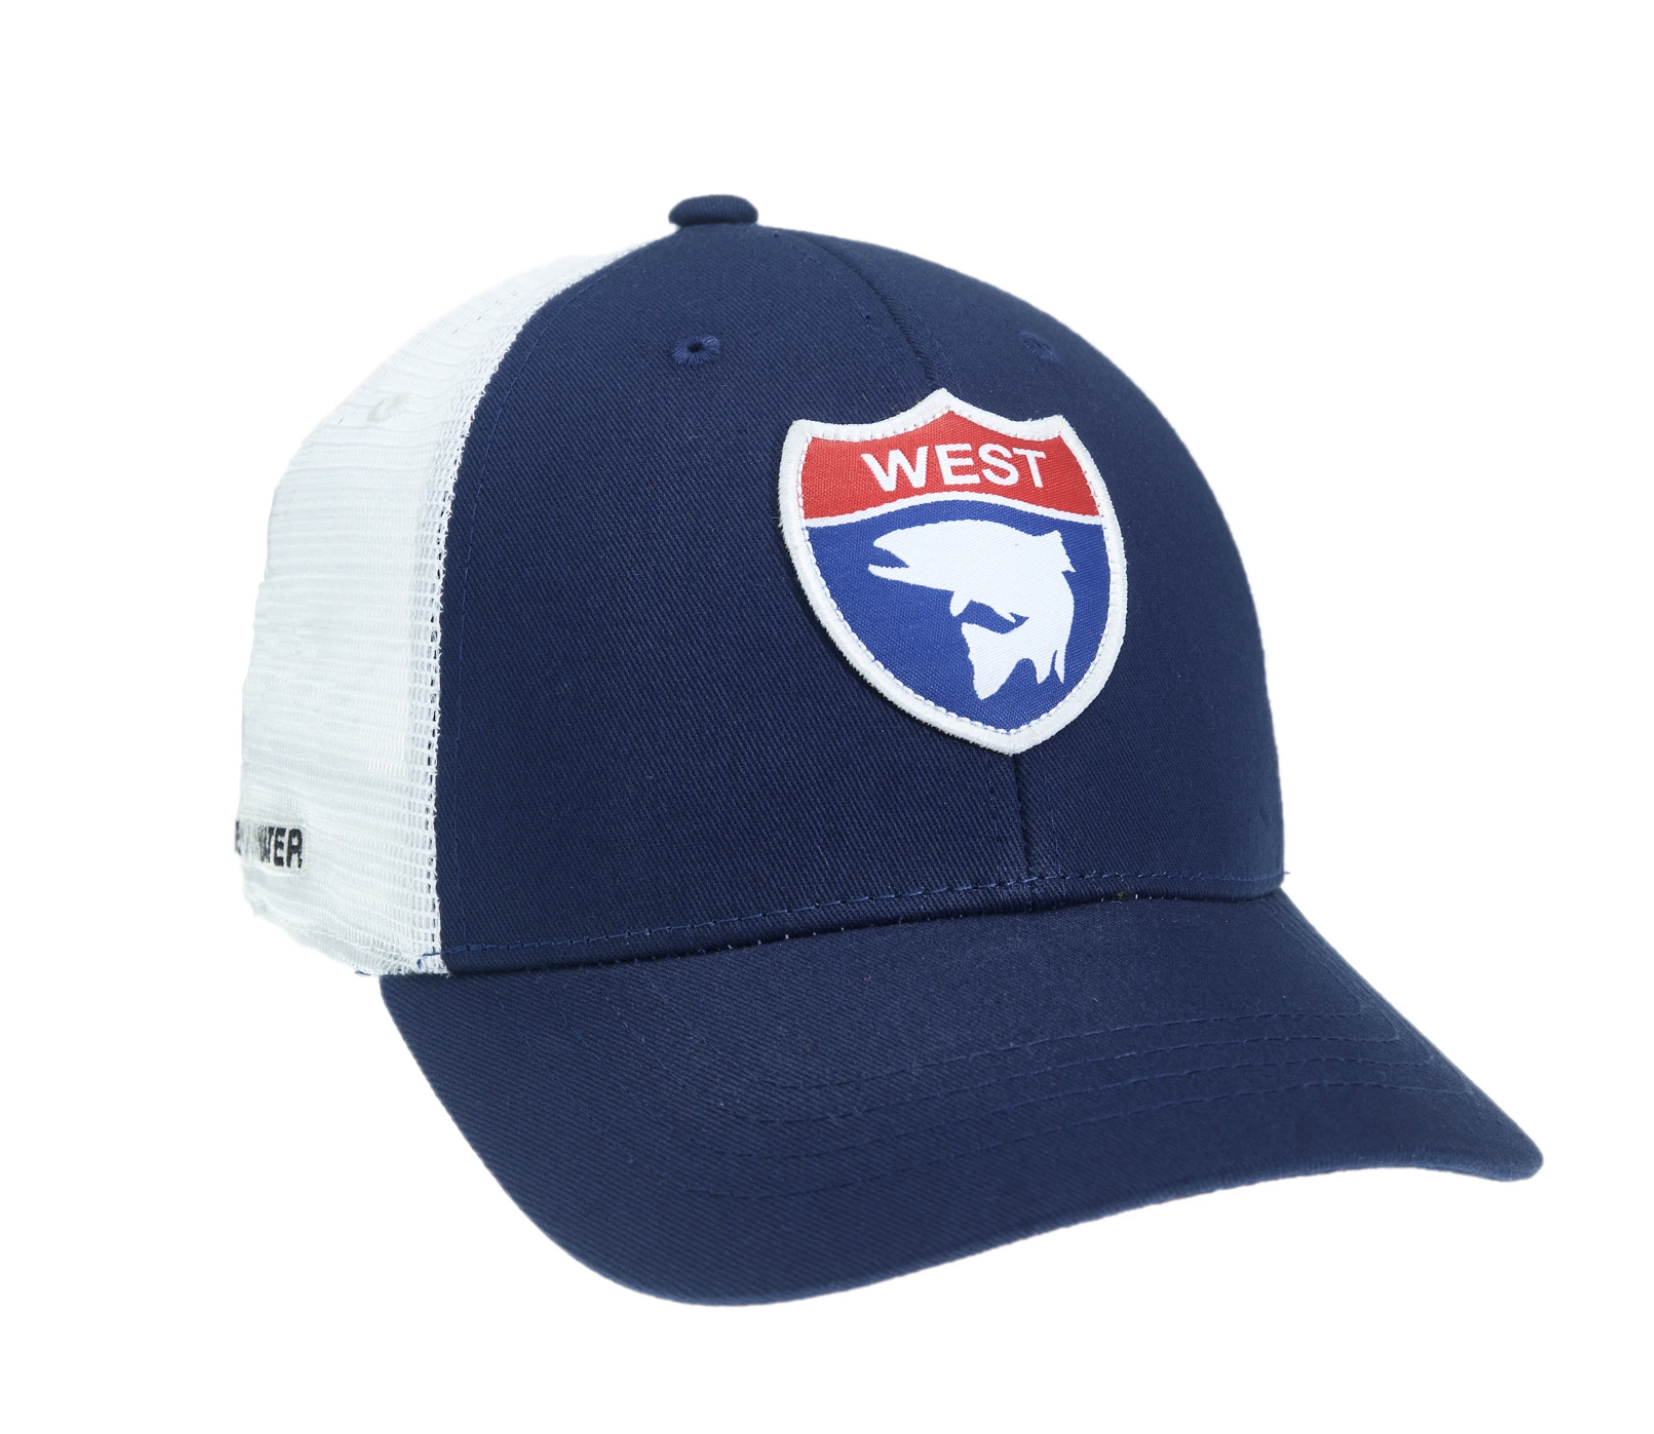 Rep Your Water Rep Your Water - Interstate West Hat